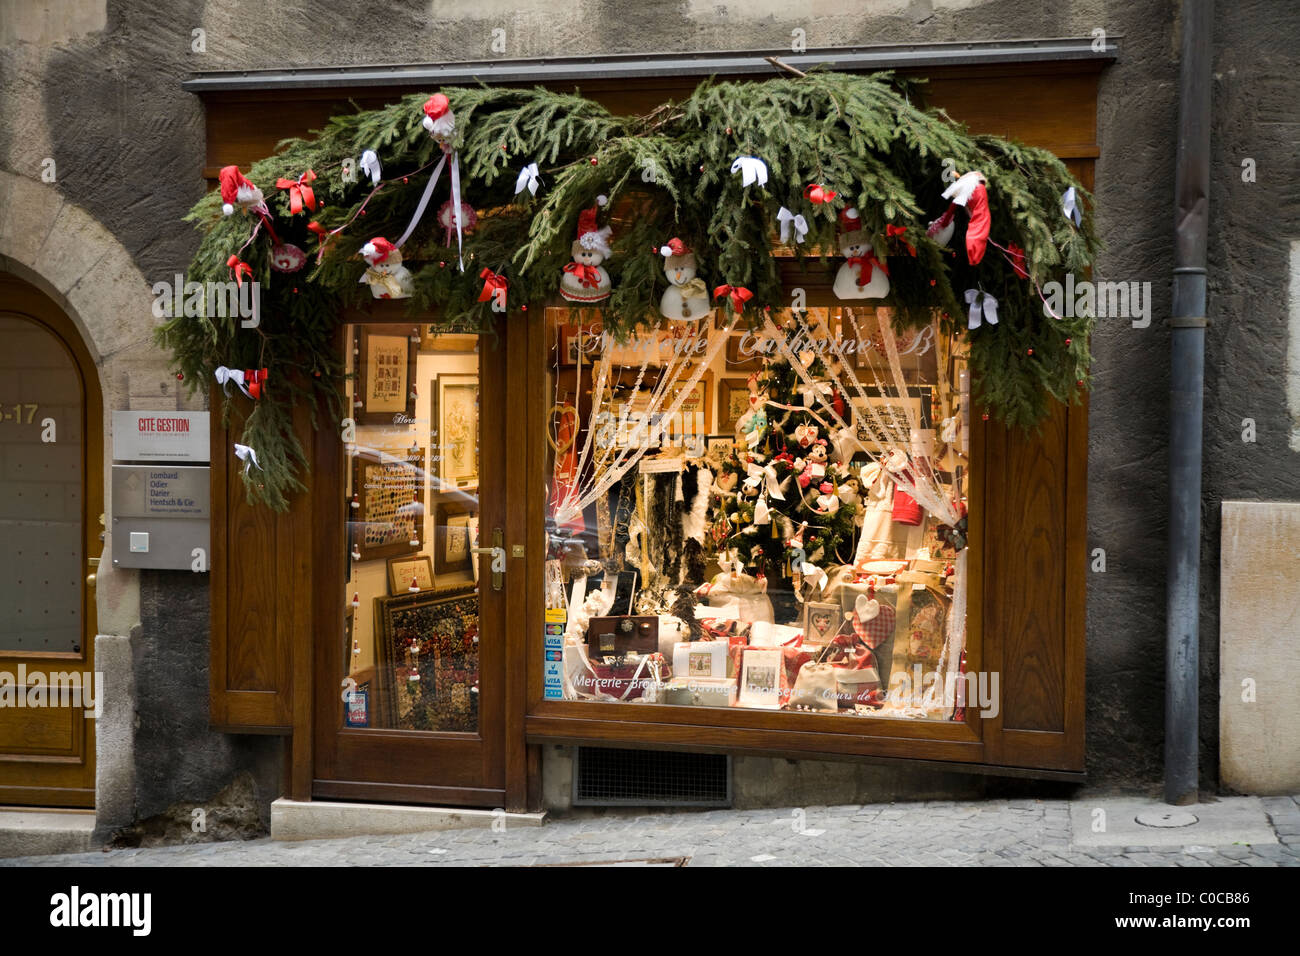 #A72D24 Sewing Shop / Embroidery / Needlework / Art / Tapestry  5545 decorations noel geneve 1300x956 px @ aertt.com